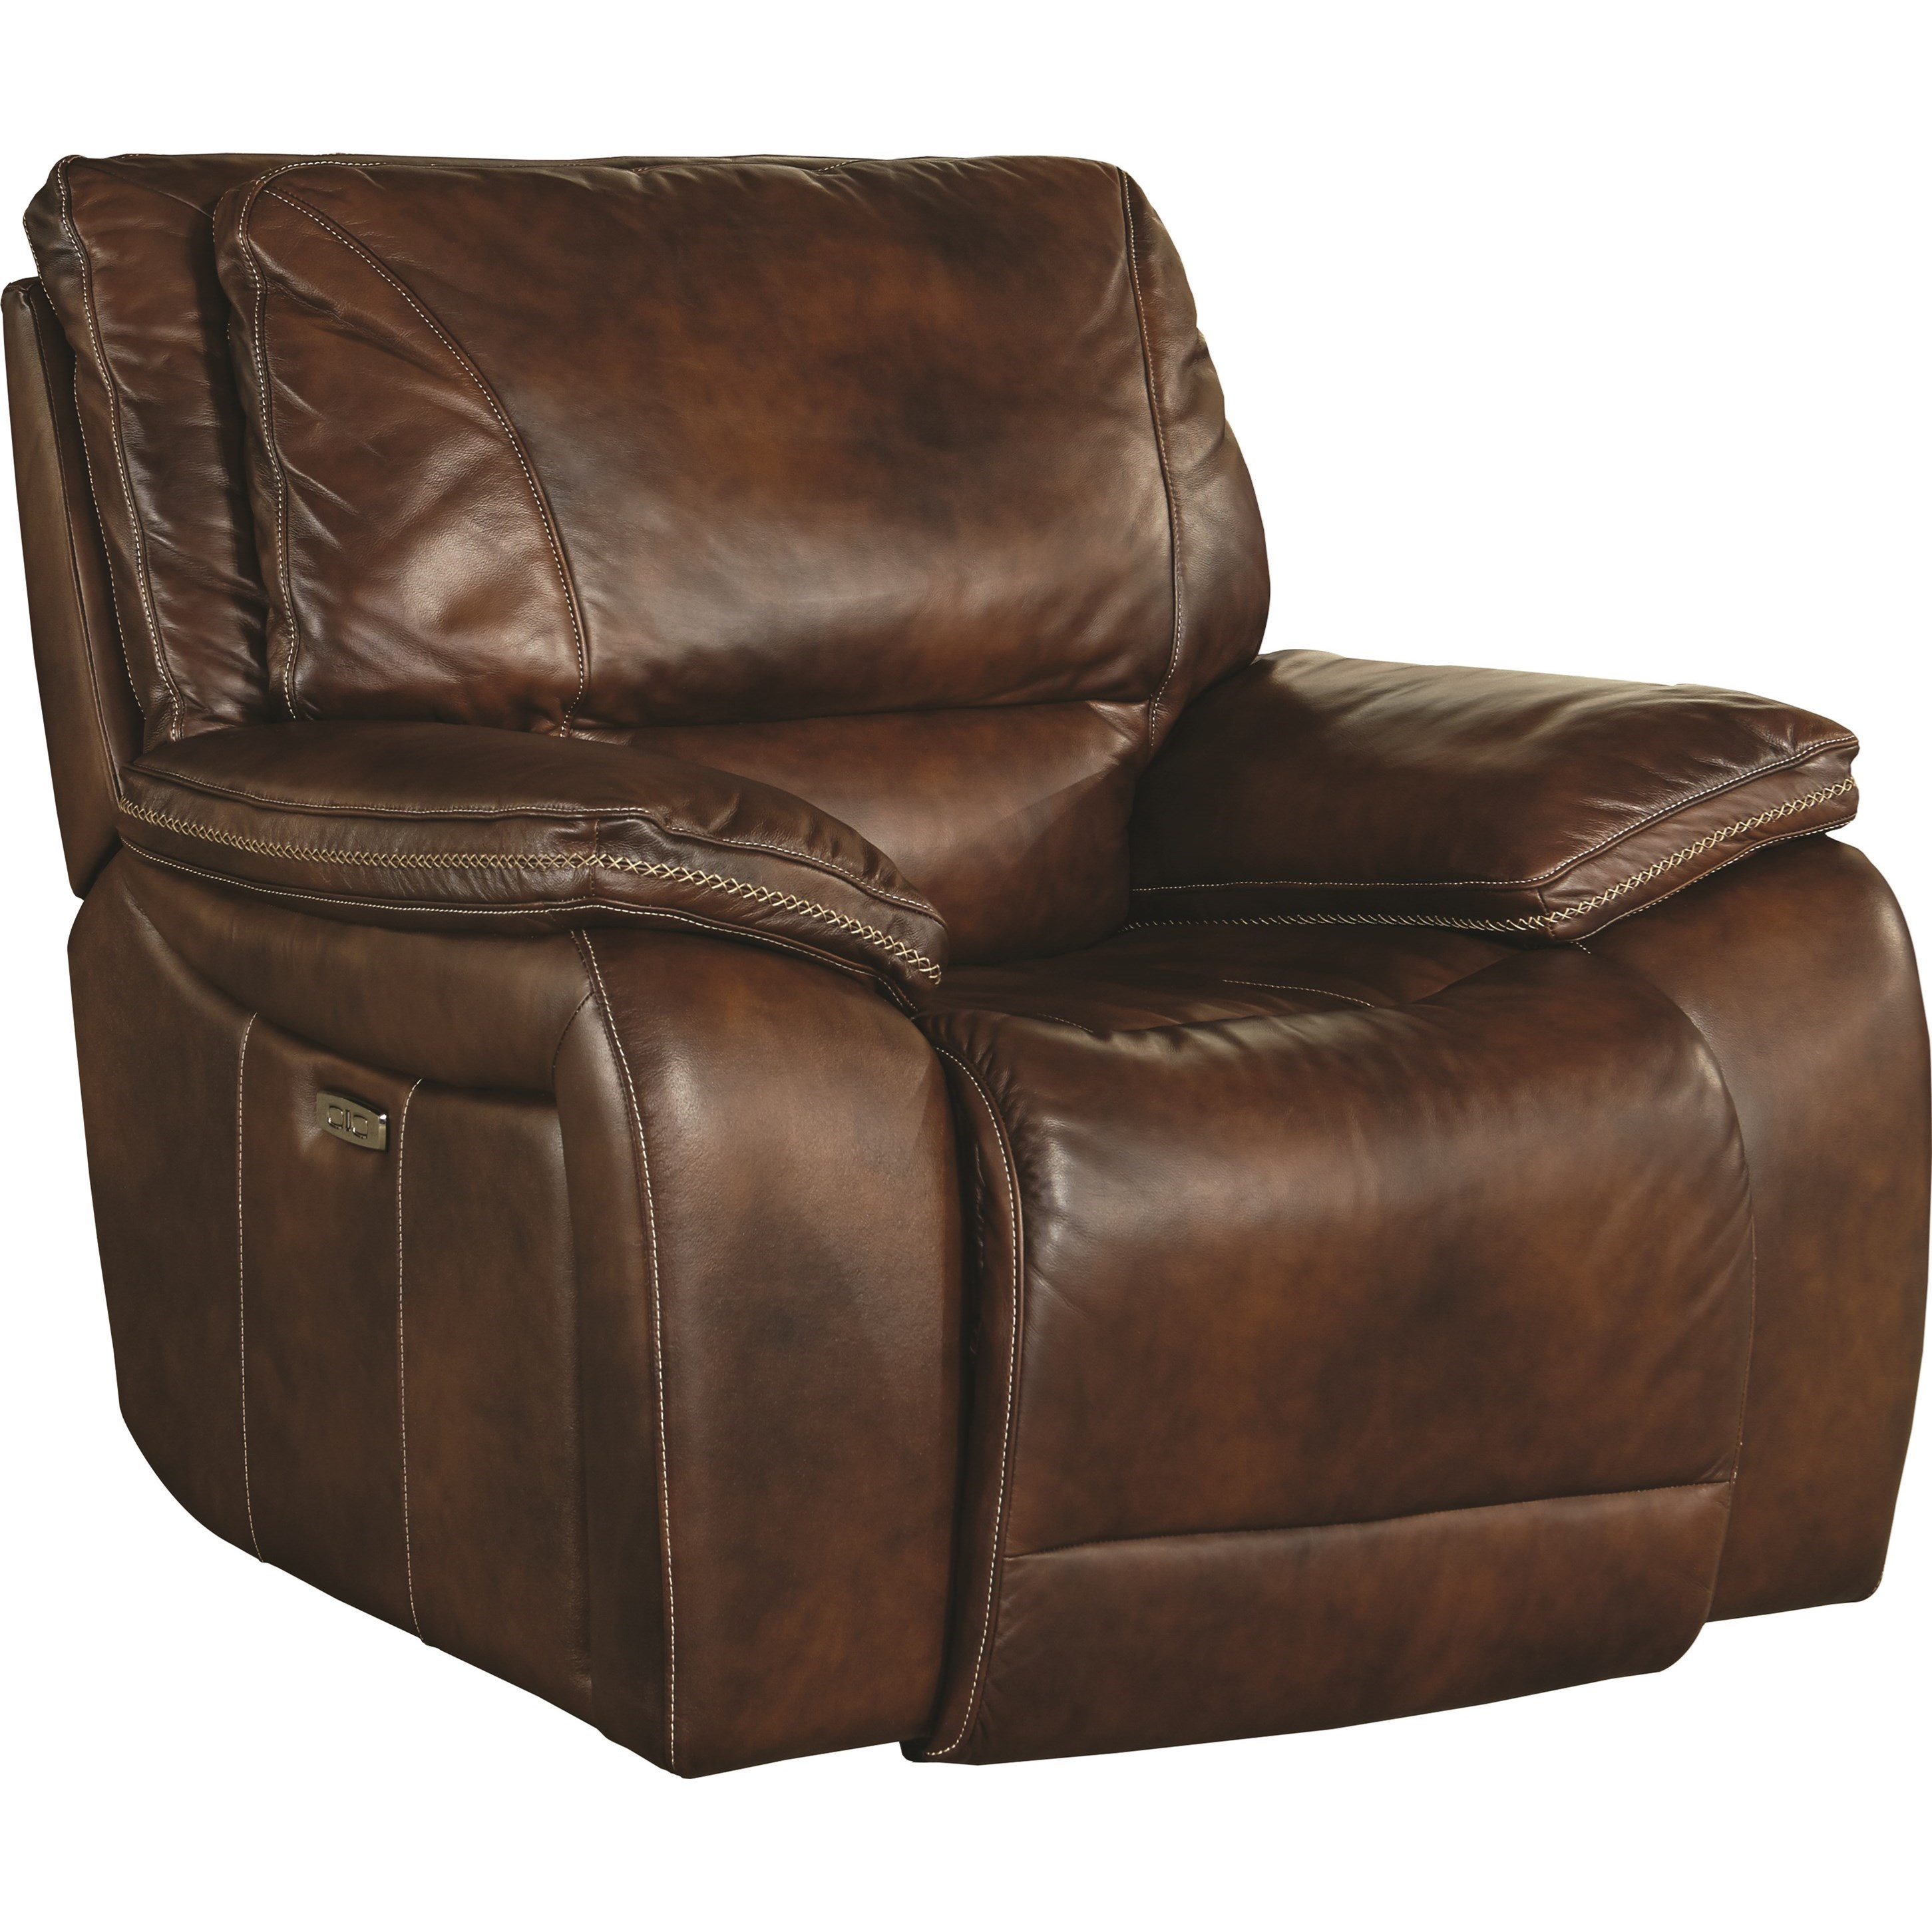 Vail Power Recliner by Parker Living at Simply Home by Lindy's